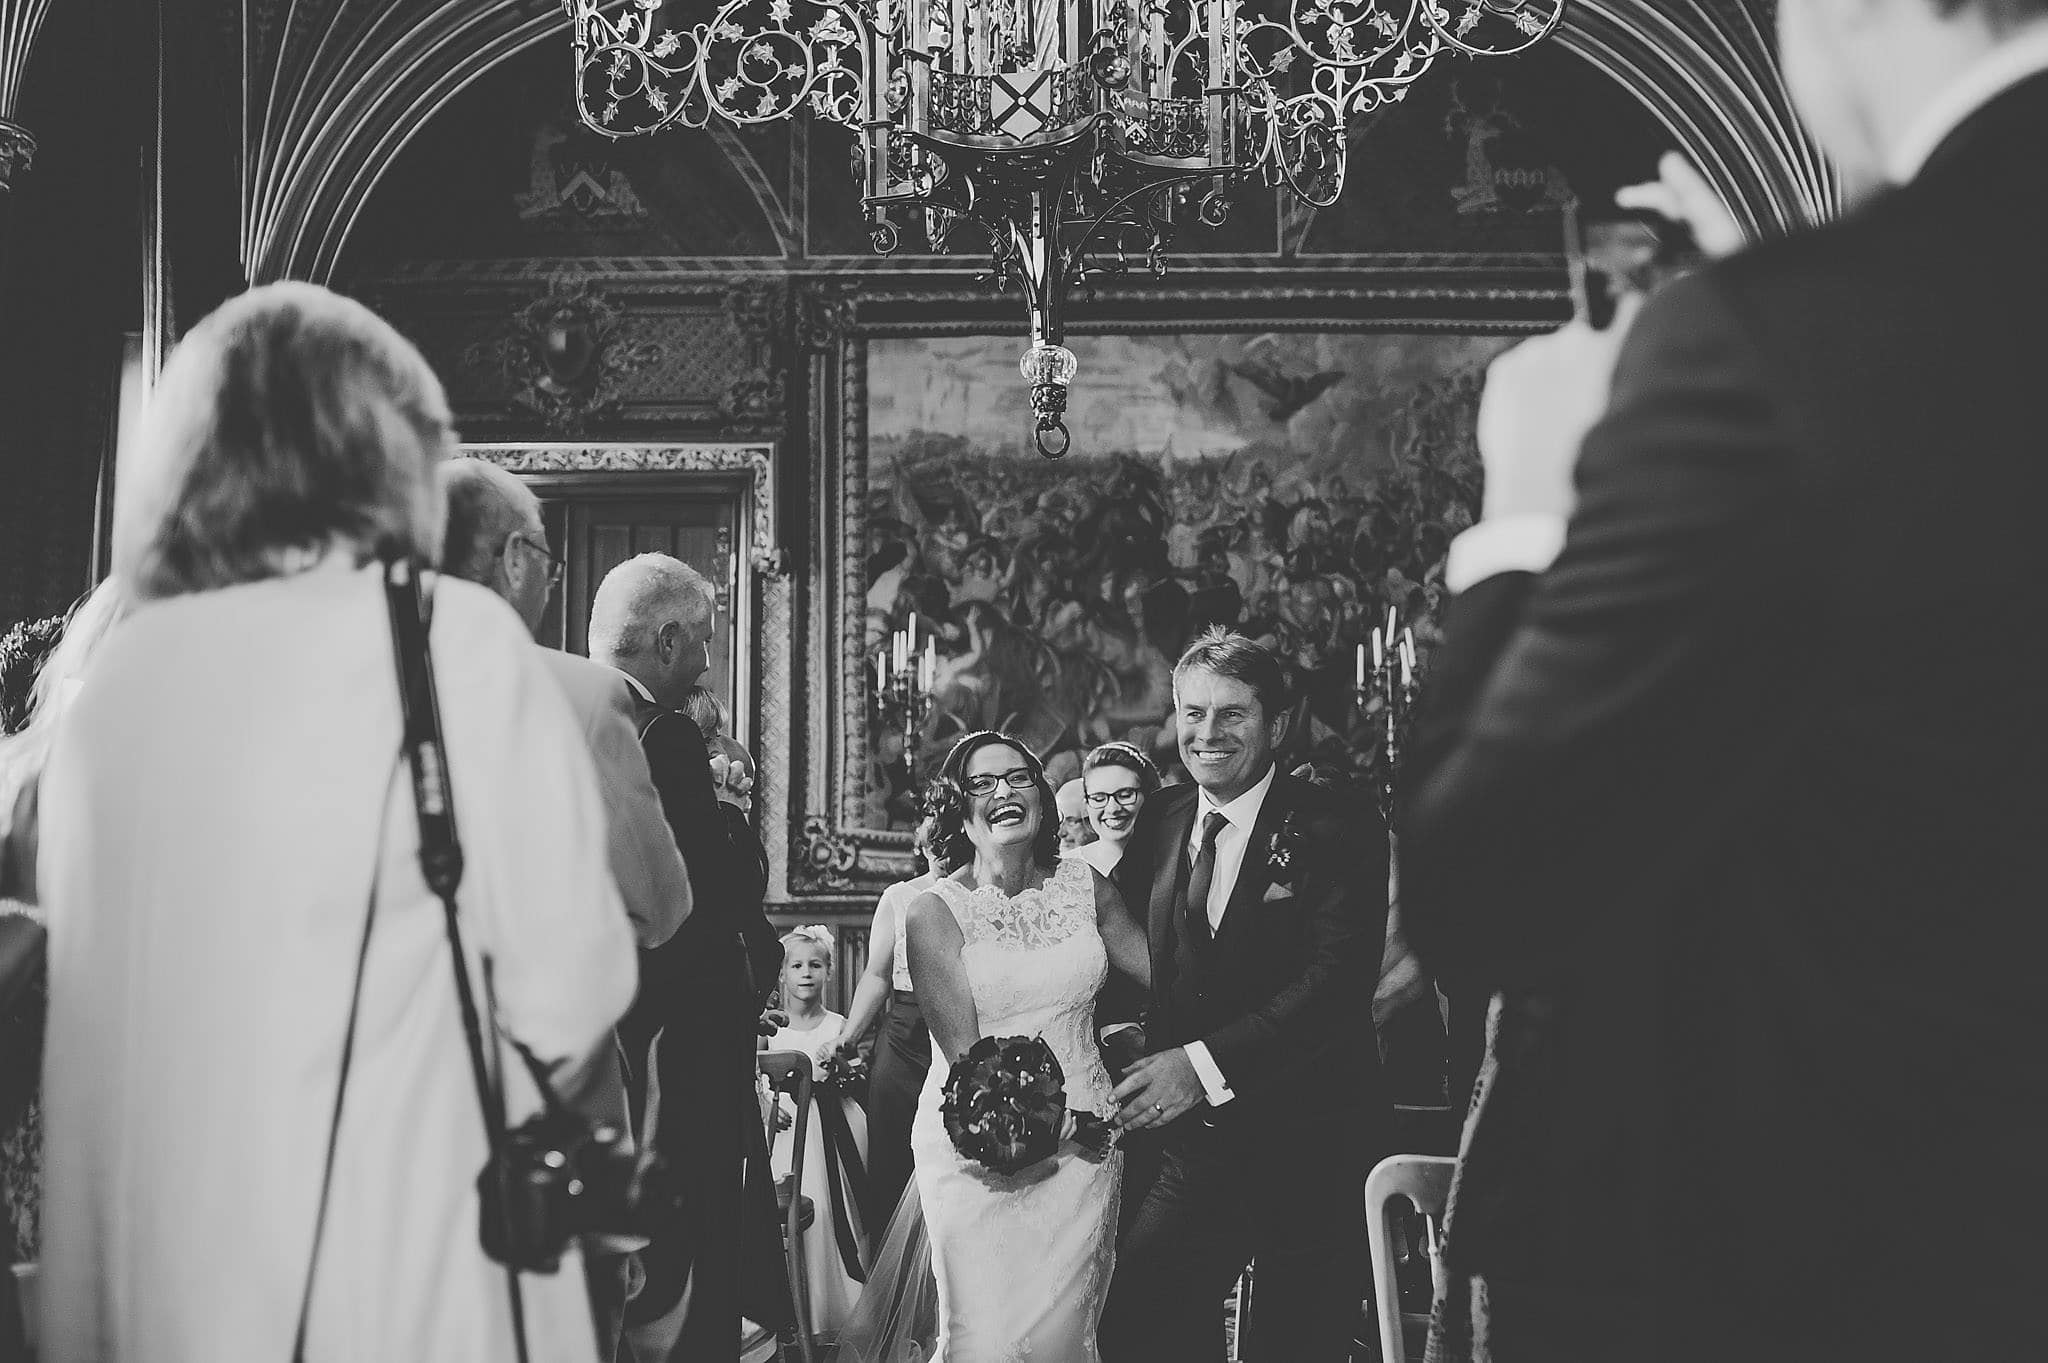 wedding photography at eastnor castle in herefordshire 64 - Wedding photography at Eastnor Castle in Herefordshire | Christine + Martin